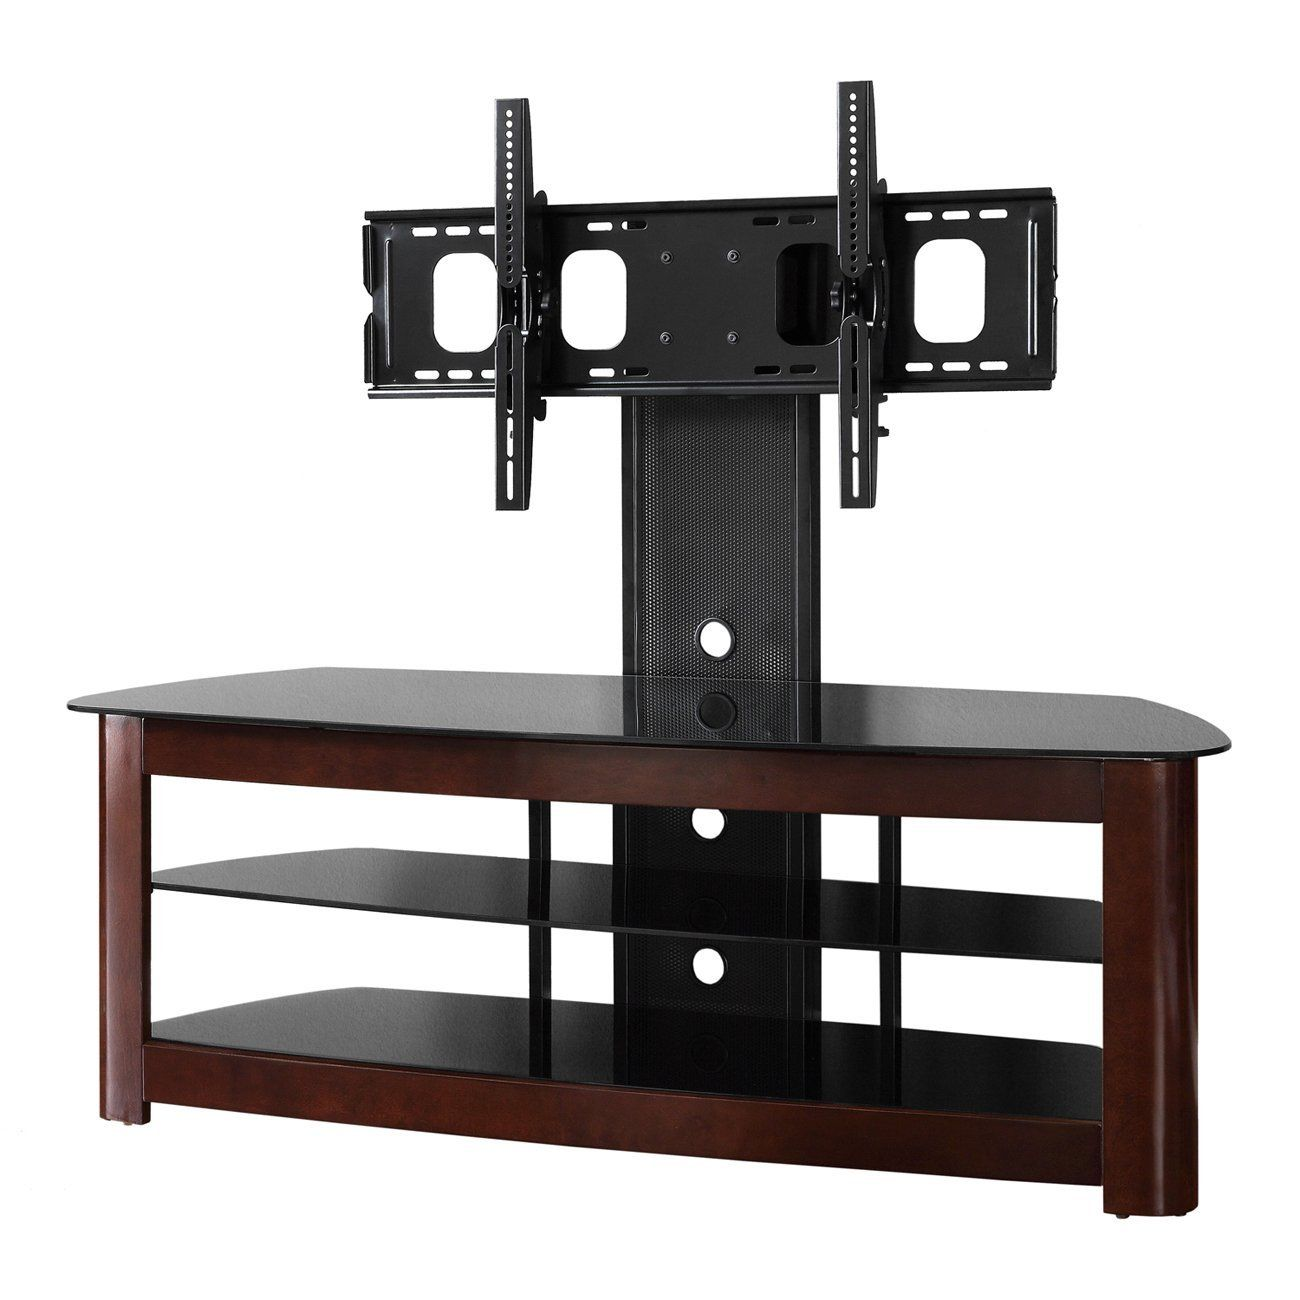 70 Inch Tv Stand For Home Theater Good Reviews About Home Design